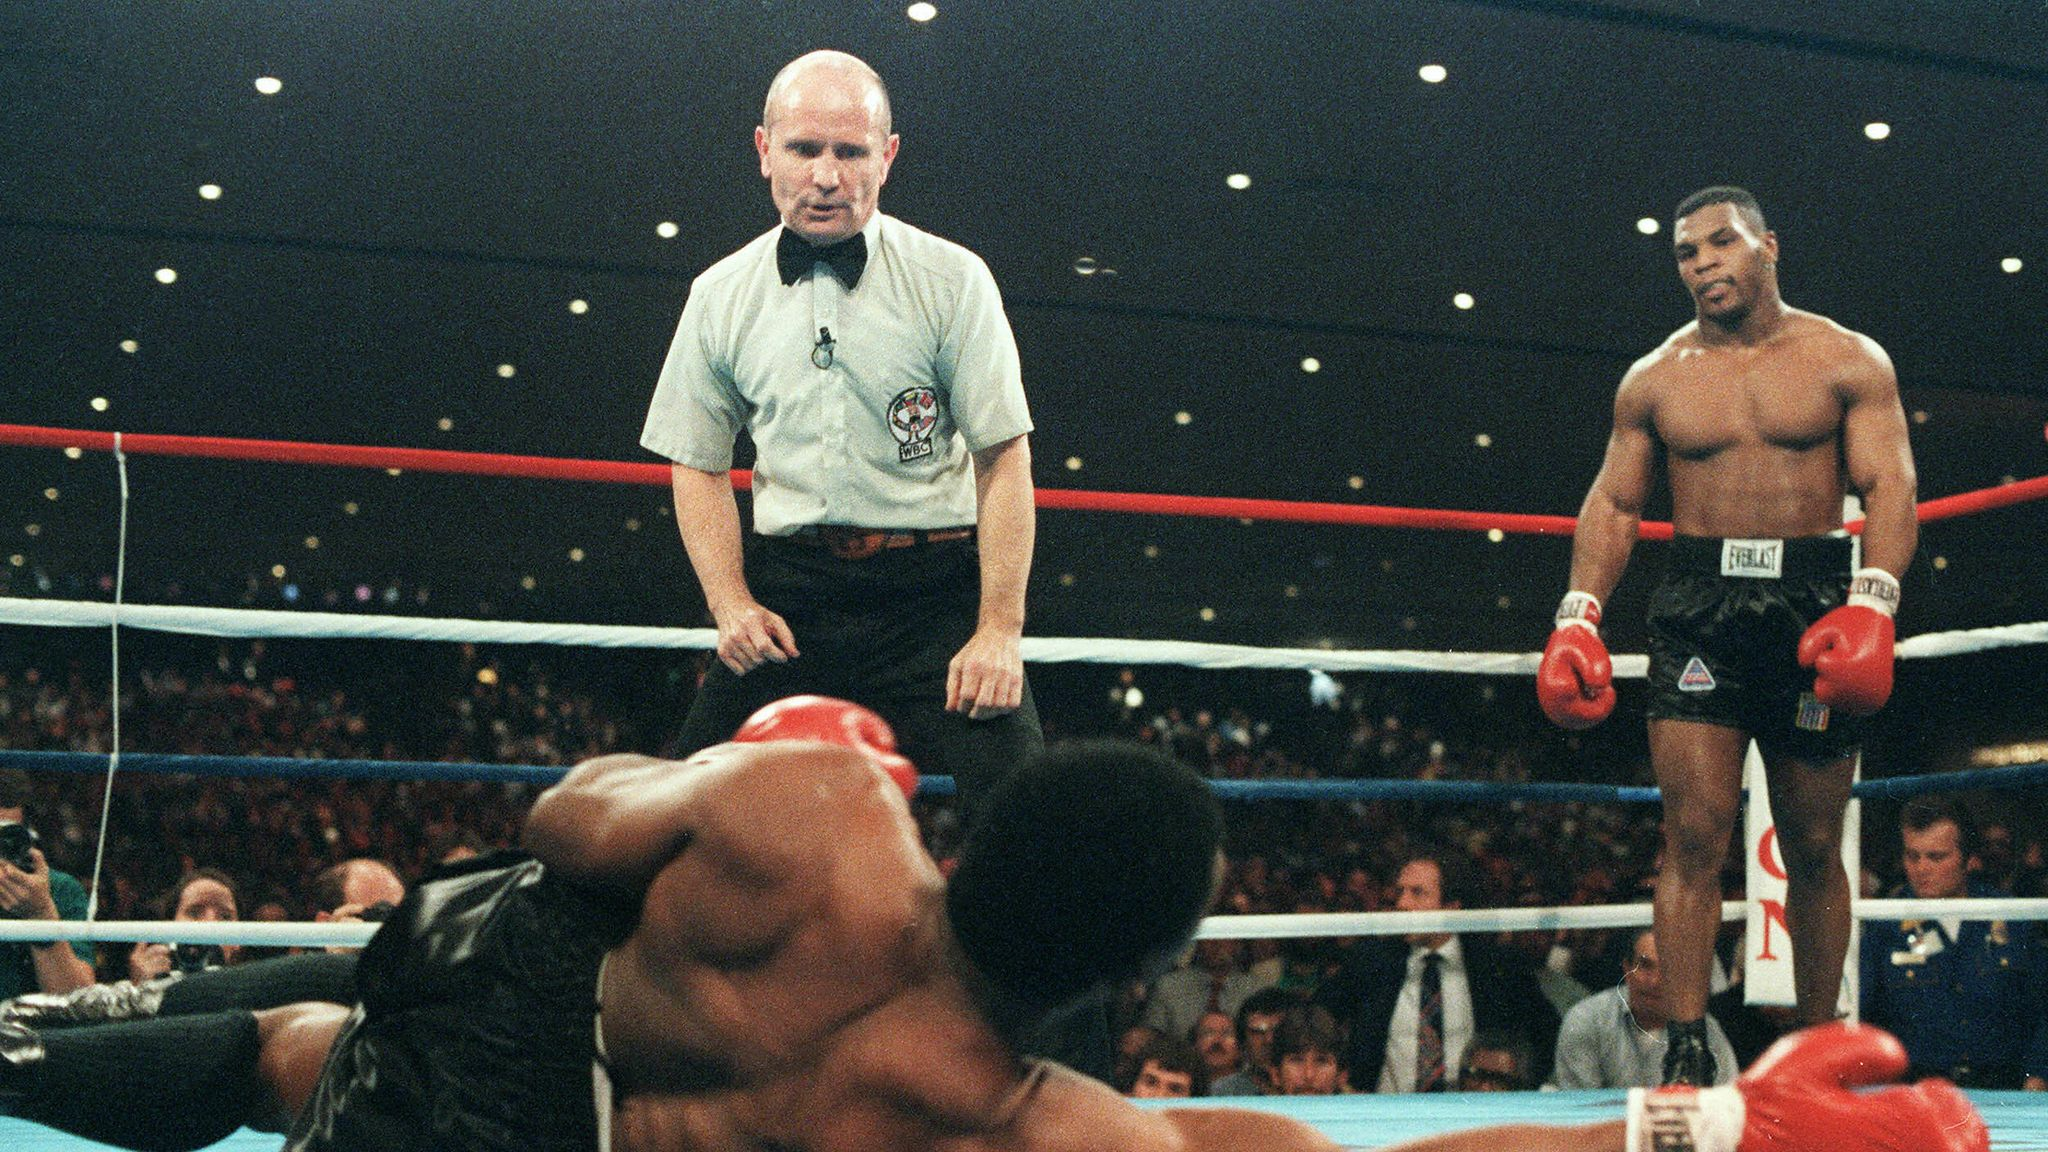 Mike Tyson Made History On November 22 1986 As The Youngest Ever World Heavyweight Champion Boxing News Sky Sports